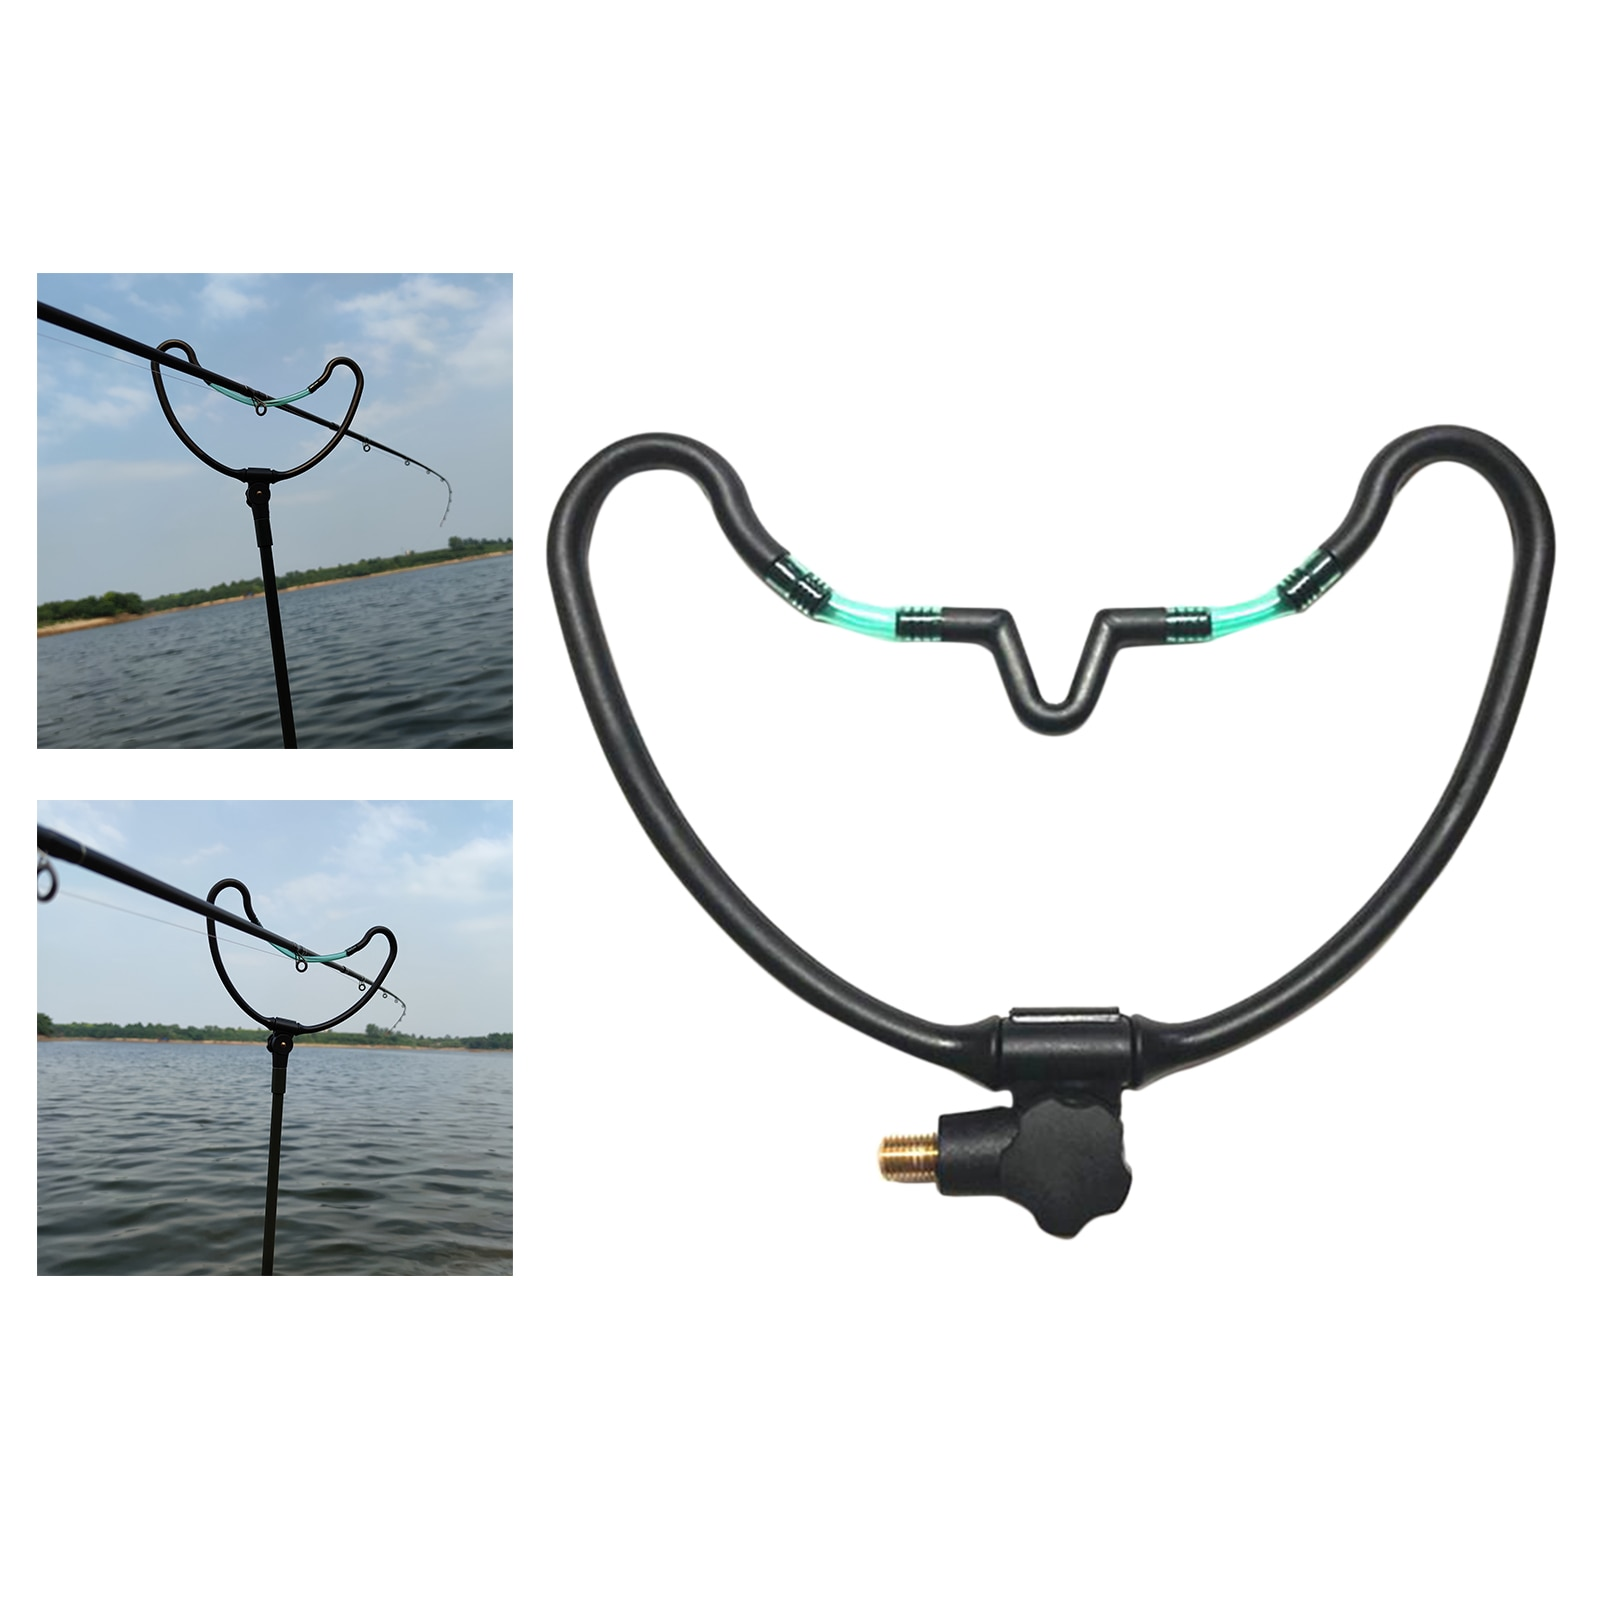 Fishing Rod Holder Pole Bracket Fishing Tool Stand Support Holder Bracket Outdoor Sports Rest Carp Fish Tackle